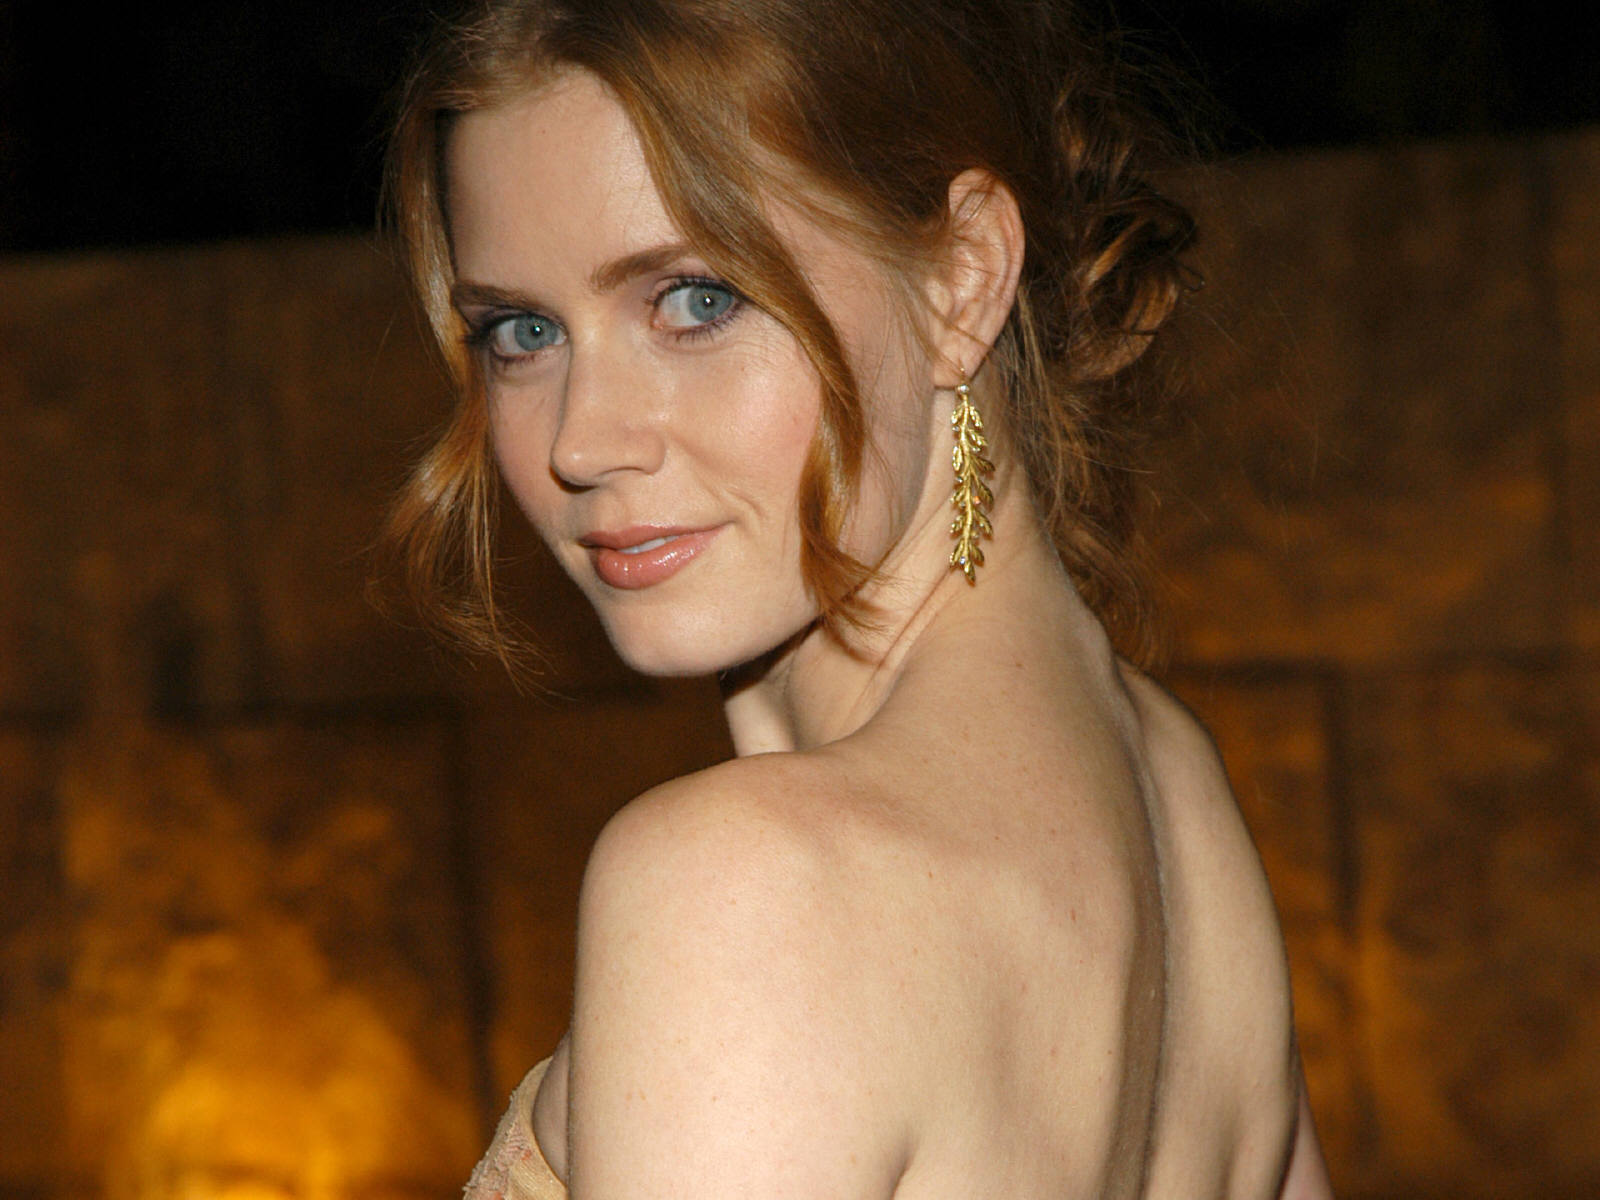 Amy Adams Upskirt amy adams nude. amy adams hot photos « the home of somali